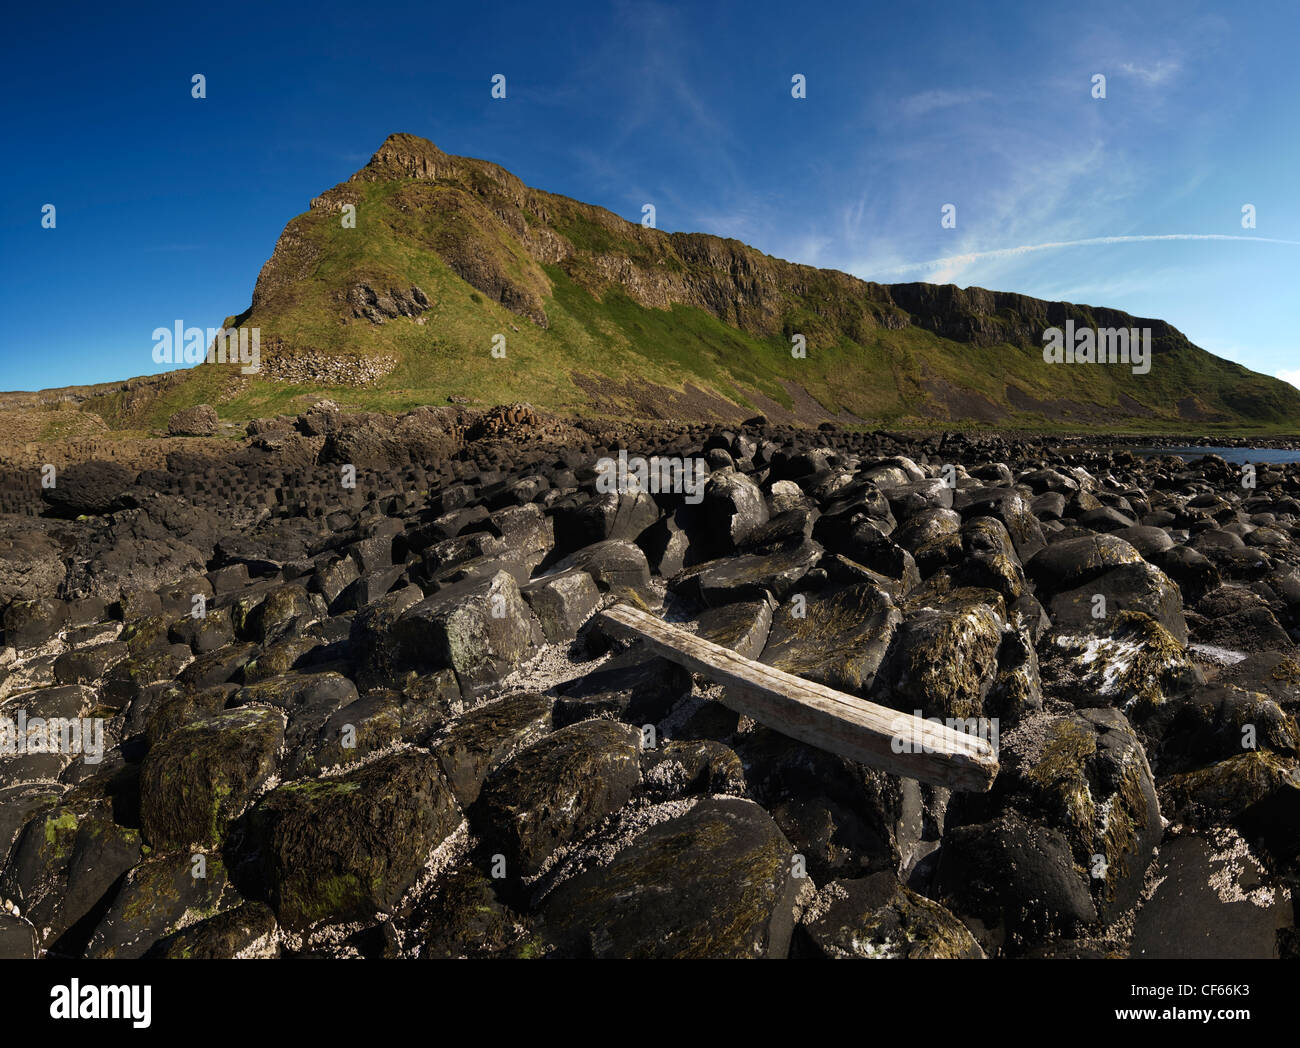 Driftwood on the interlocking basalt columns of the Giants Causeway,  a World Heritage Site and National Nature Reserve. Stock Photo